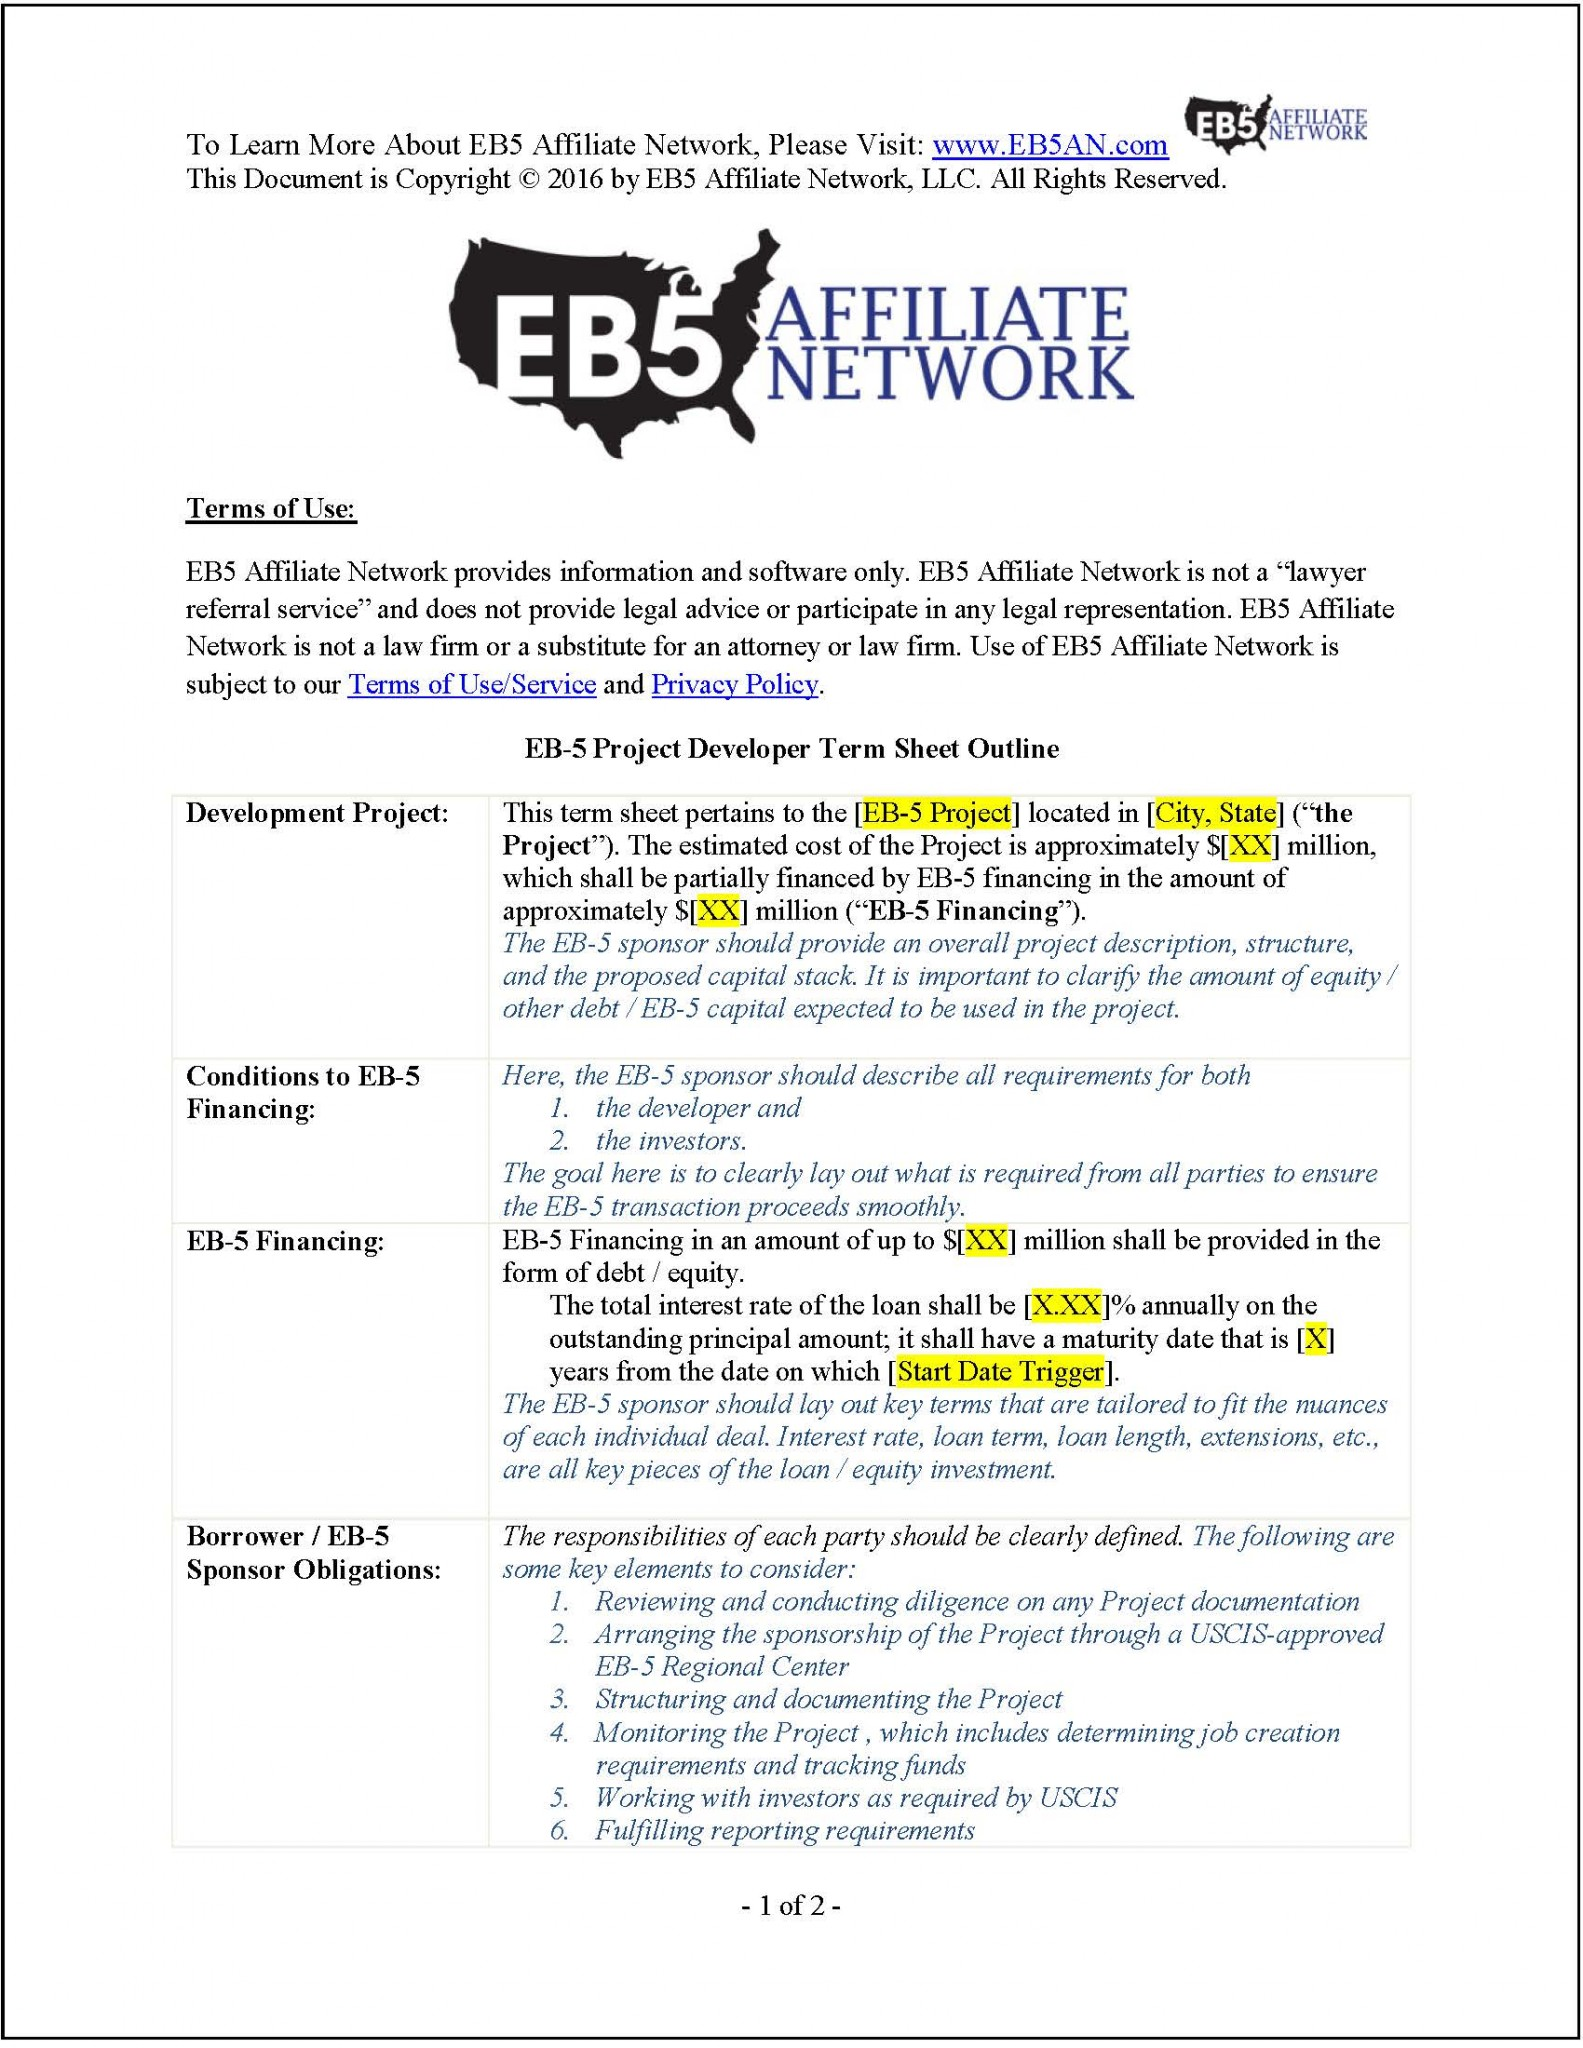 Sample EB-5 Term Sheet by EB5 Affiliate Network (V3) 4.28.2016 FINAL_Page_1